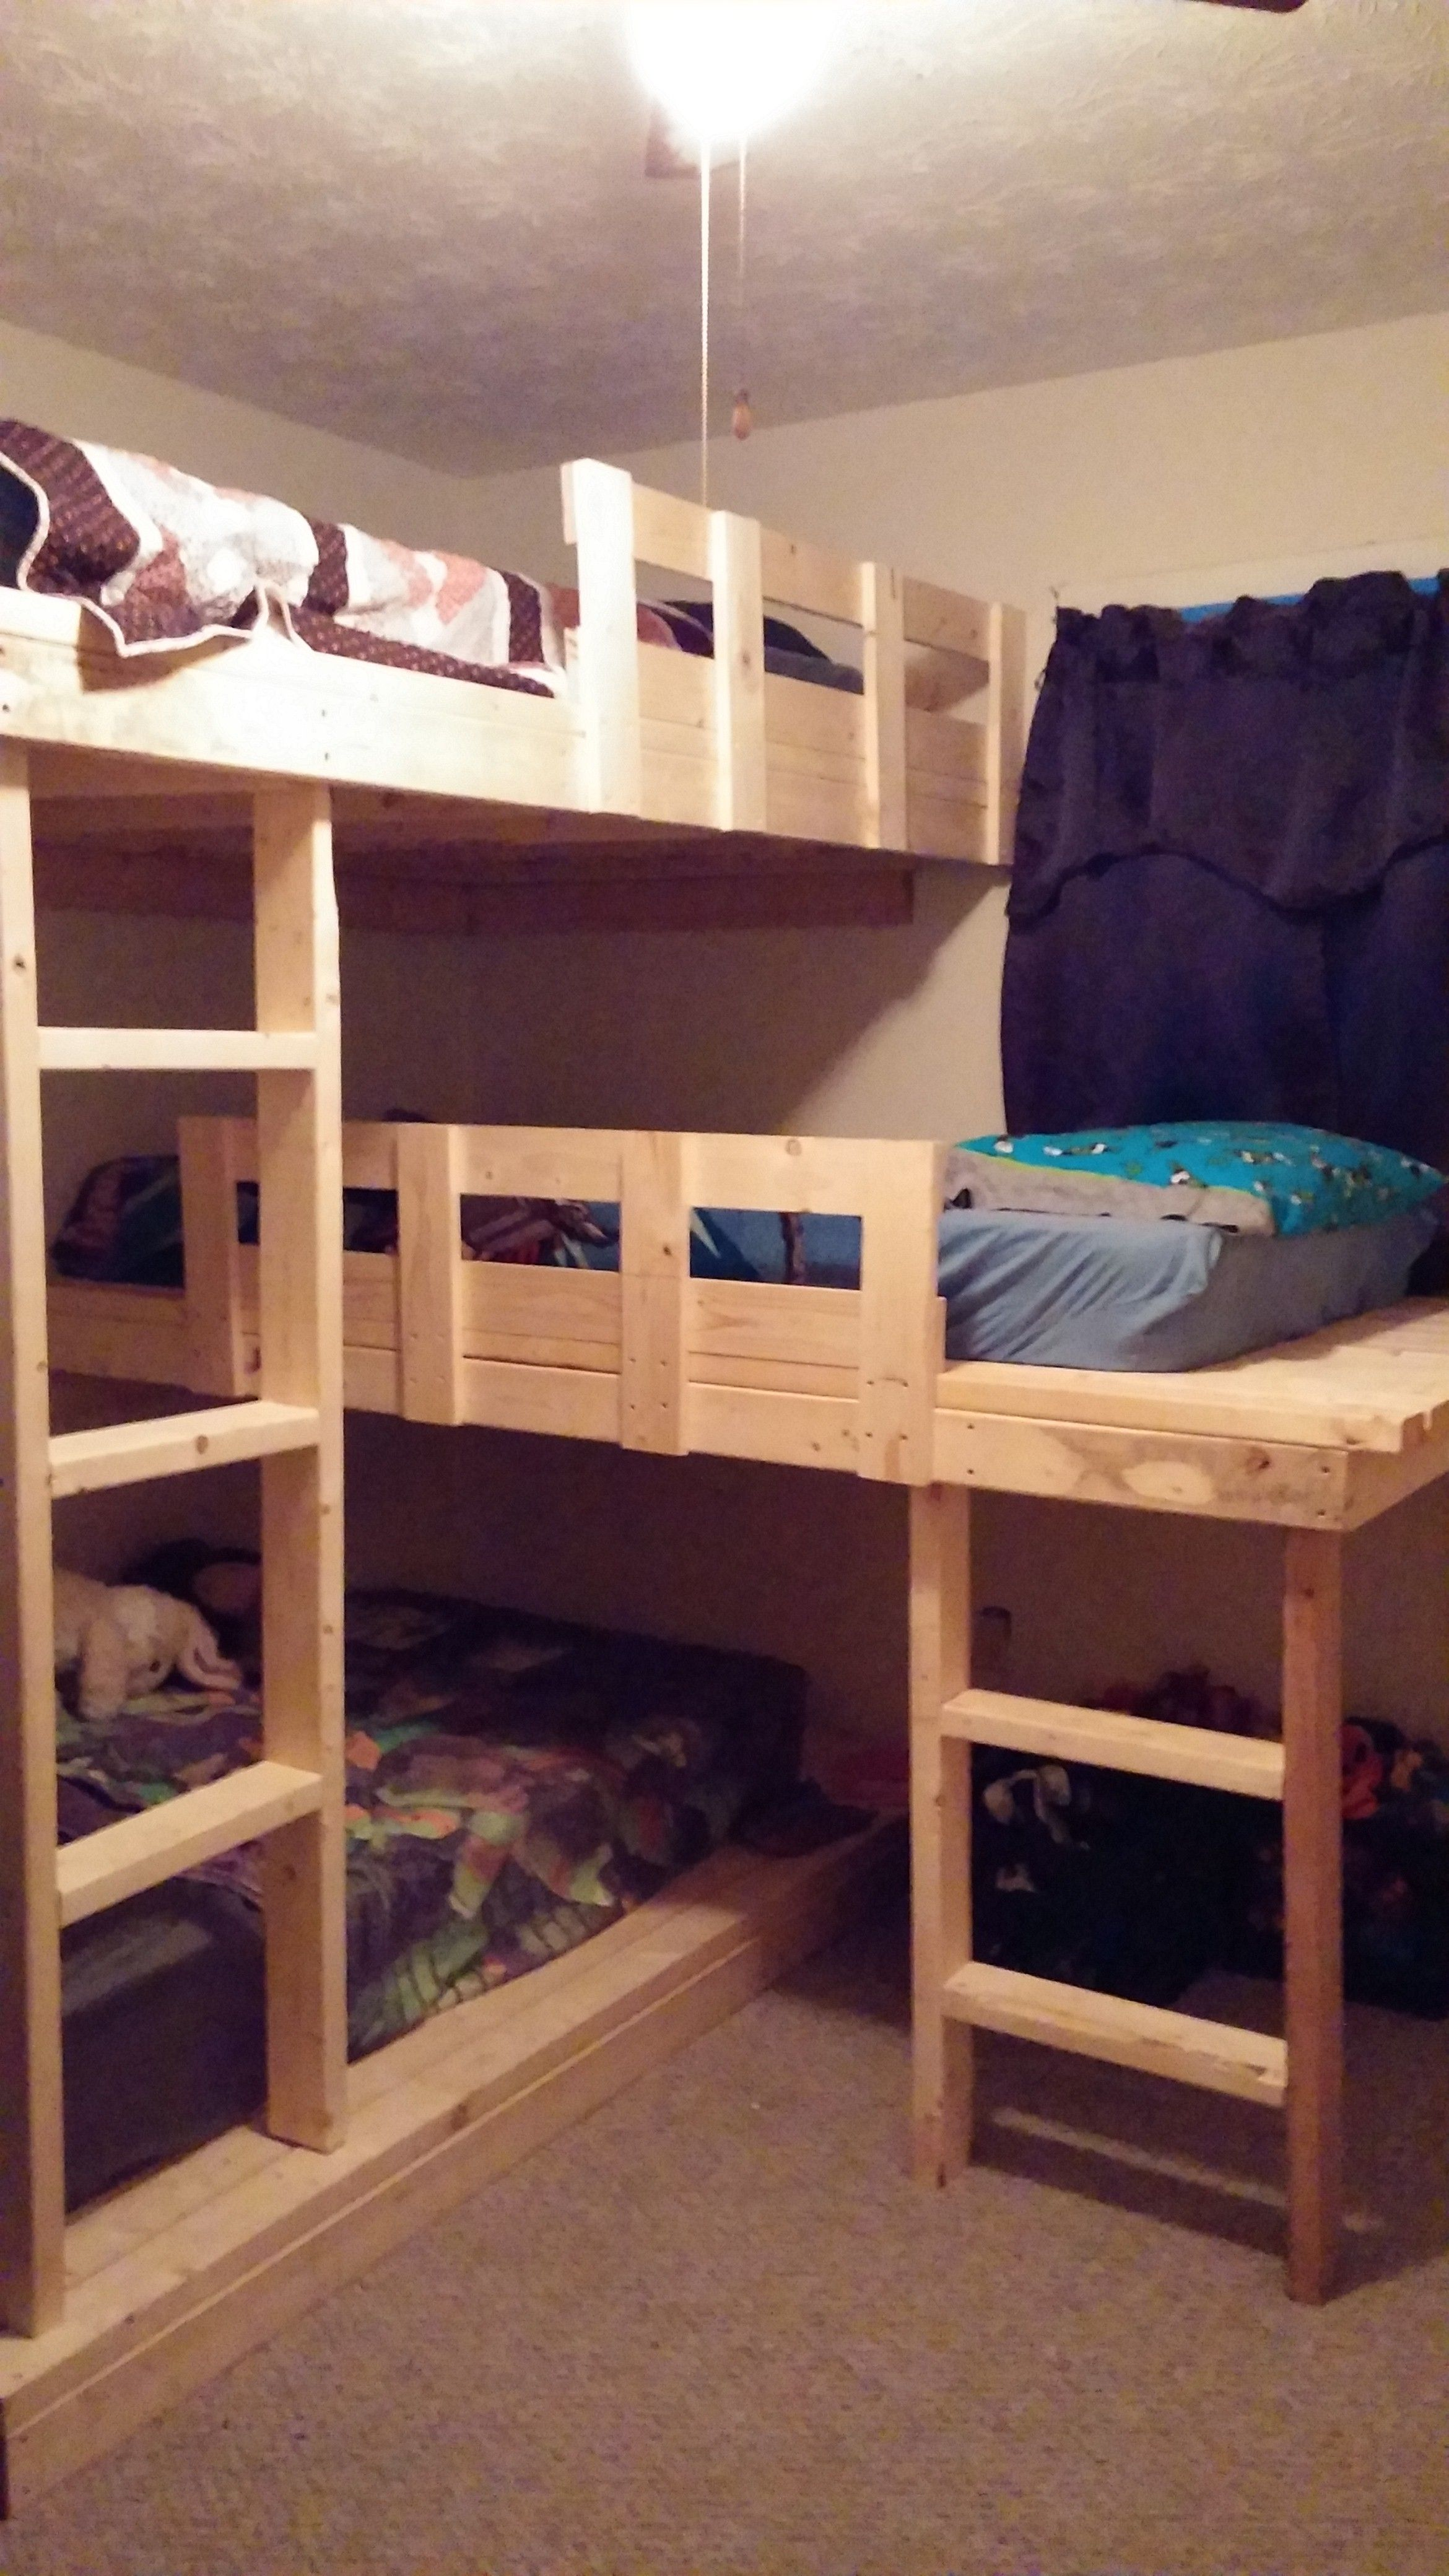 Triple Bunk Beds Do It Yourself Home Projects From Ana White  # Muebles Literas Triples